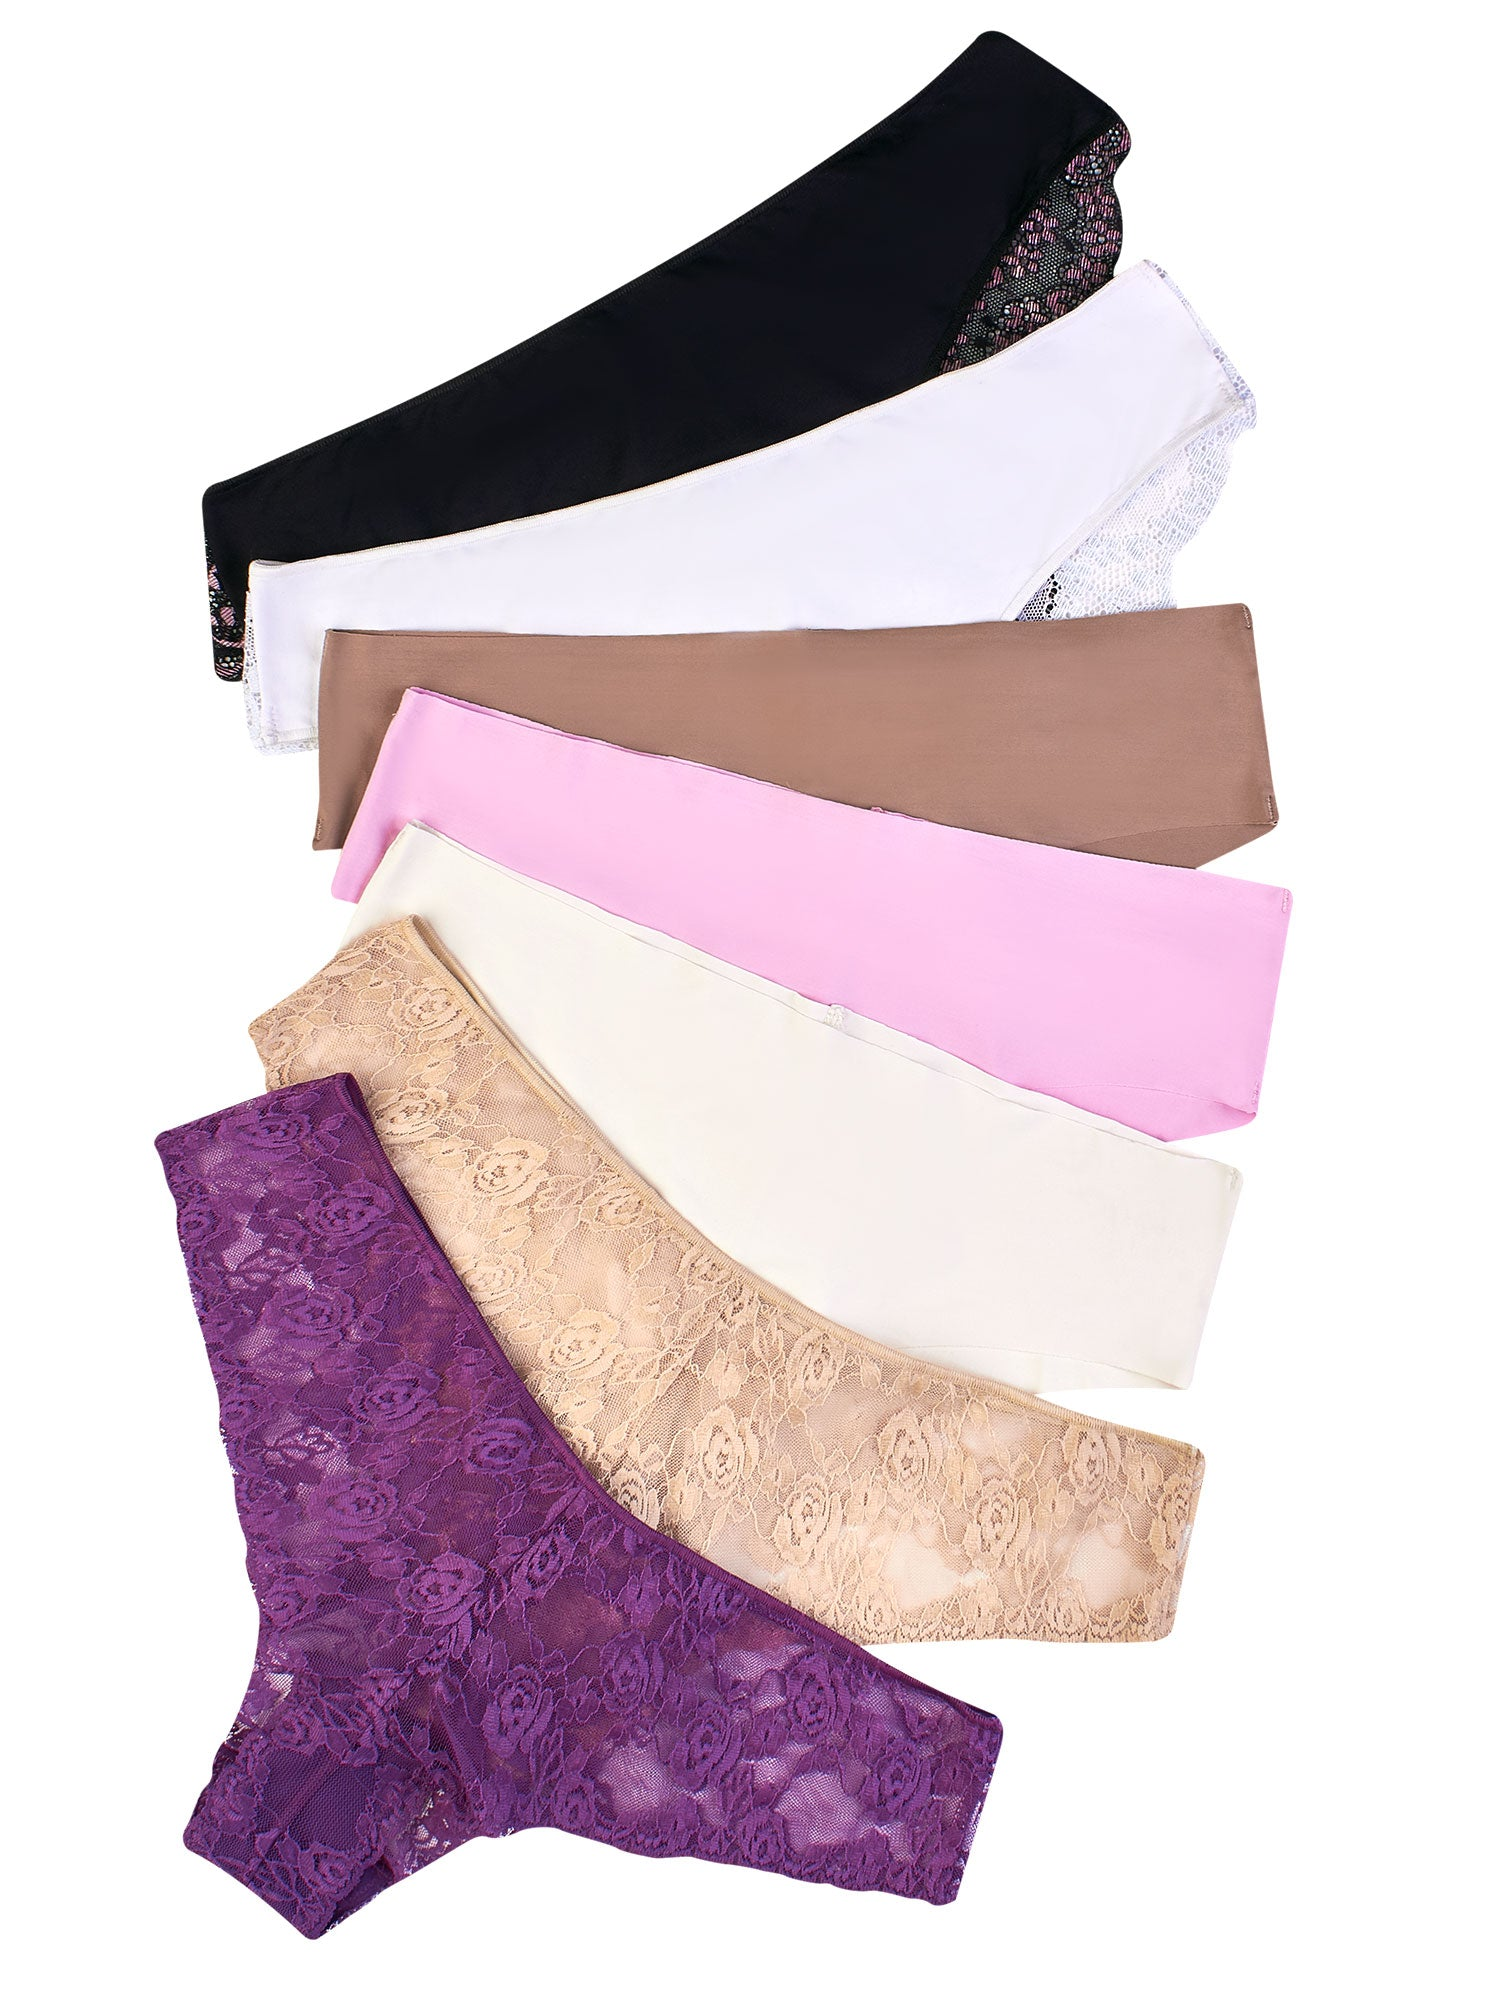 Surprise Silhouette 7 Panty Pack 71379